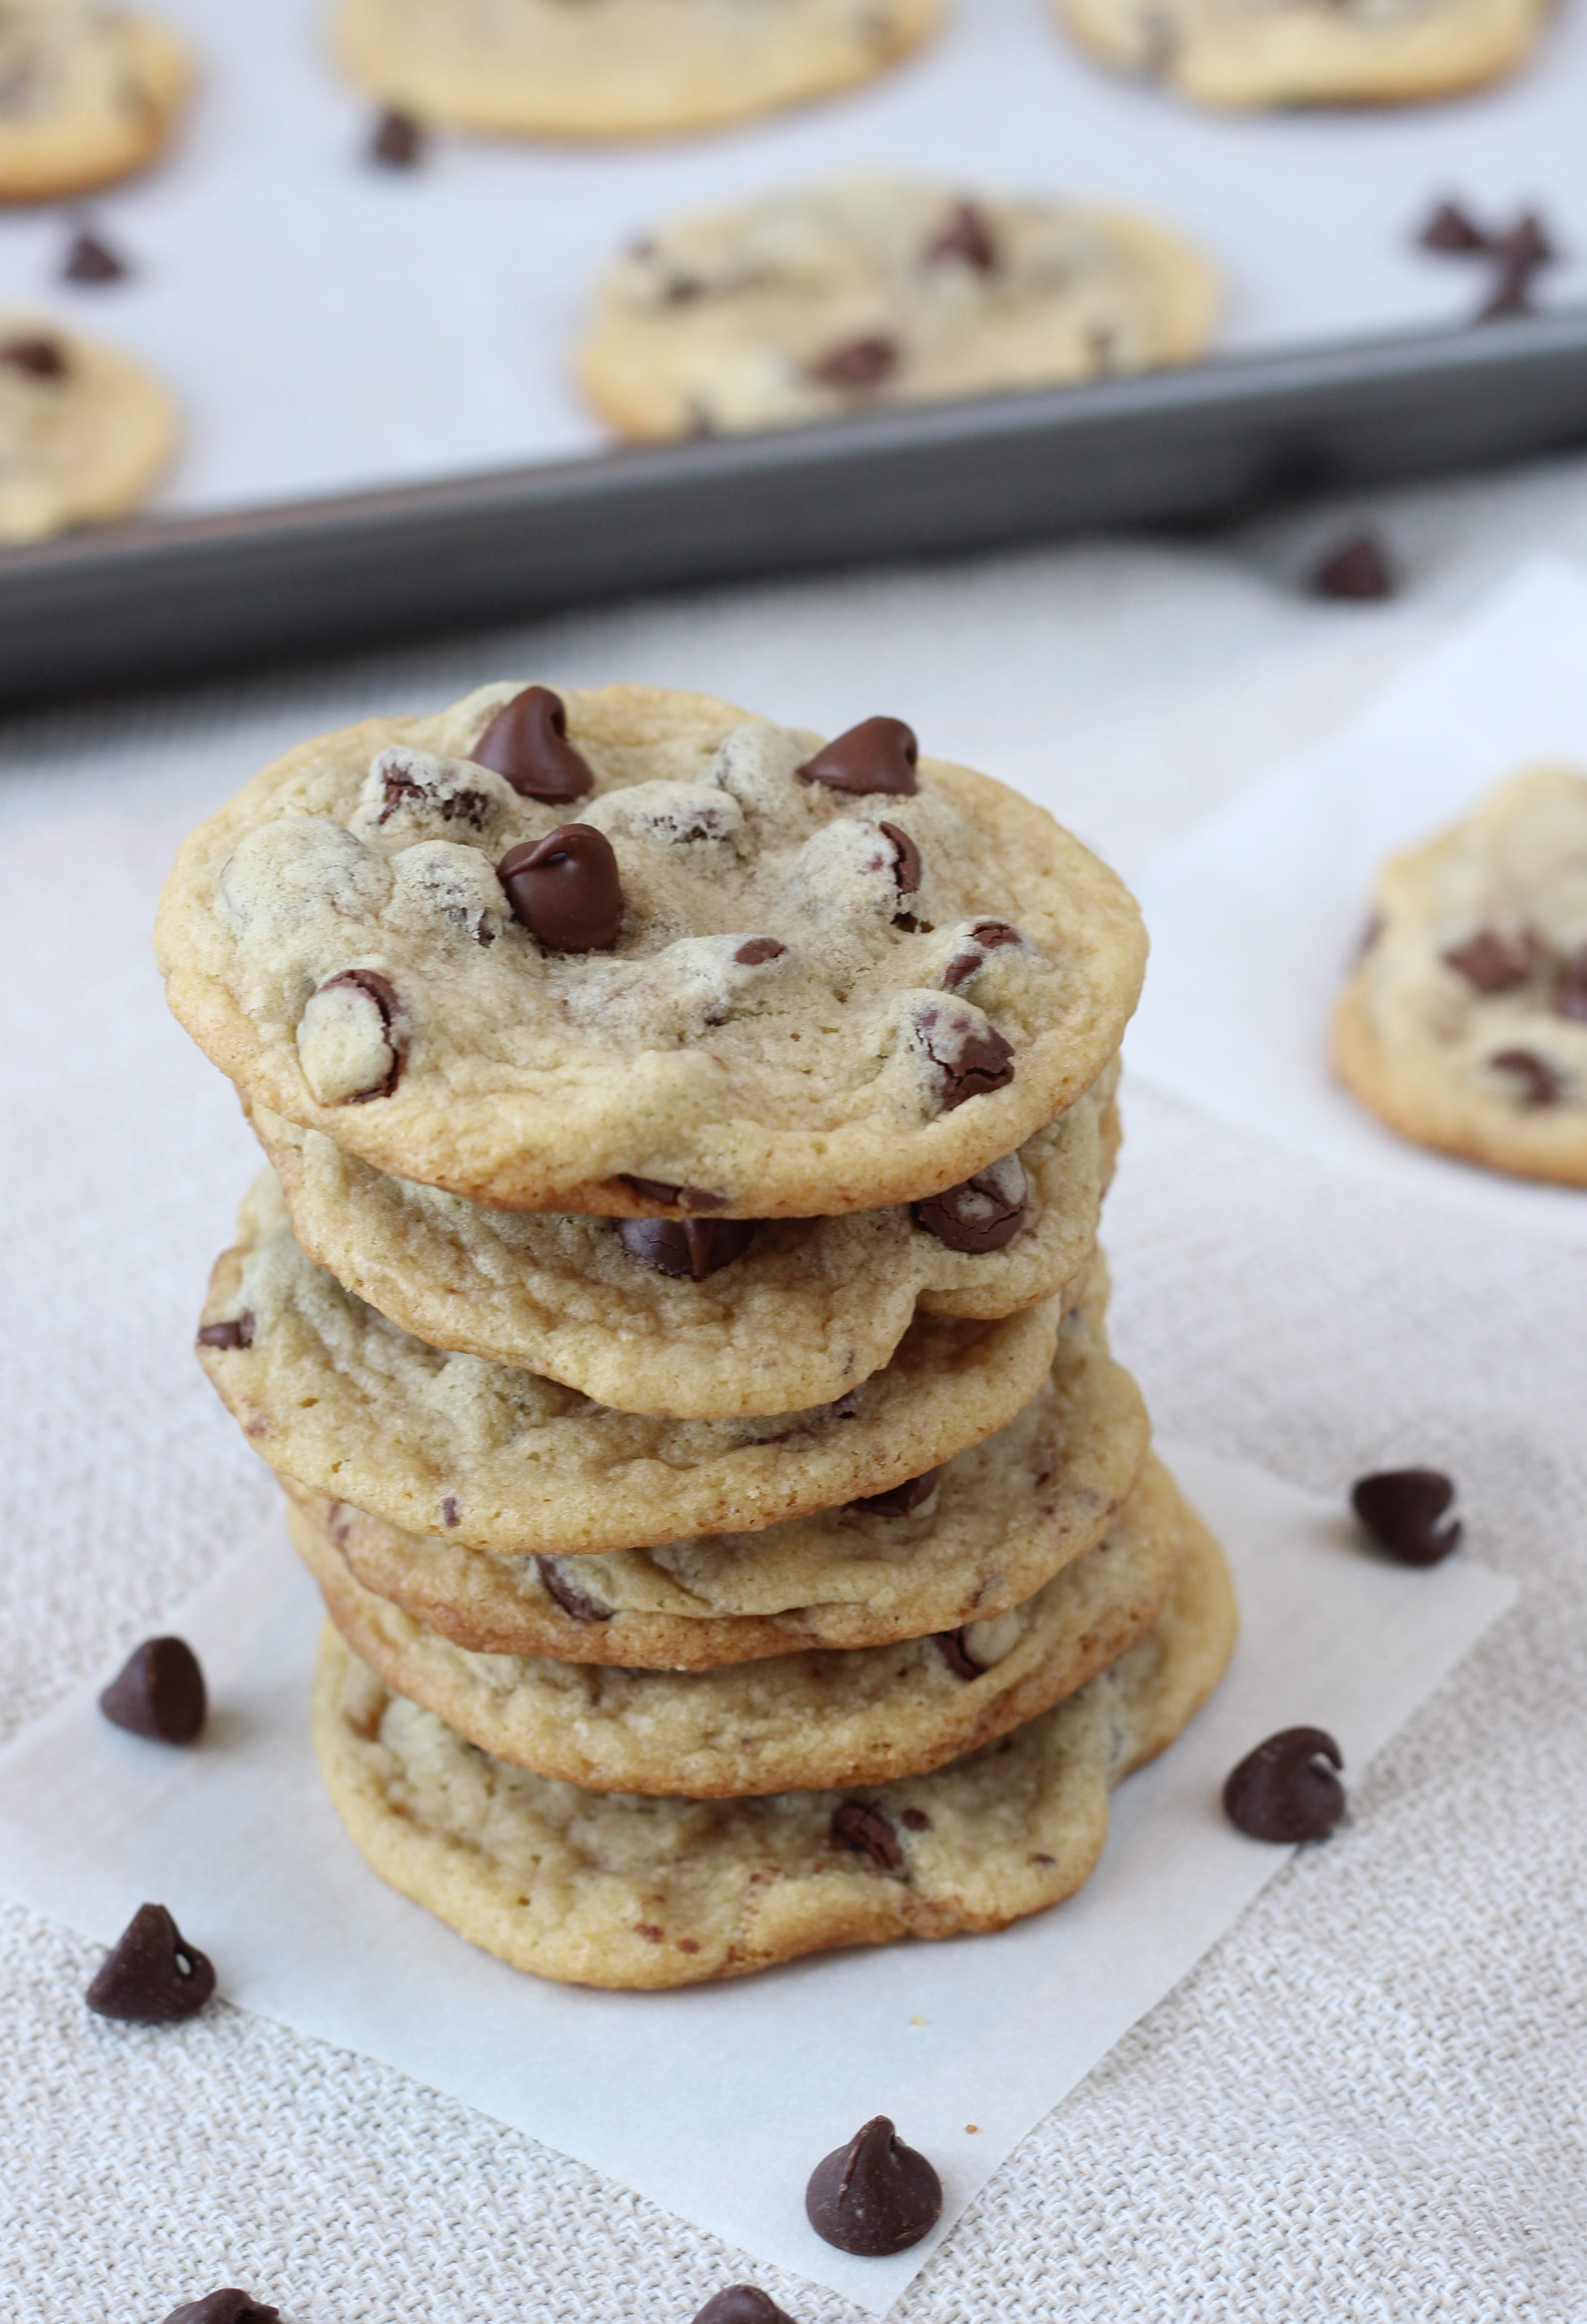 Chocolate Chip Cookies - The New York Times Top Rated Recipe!